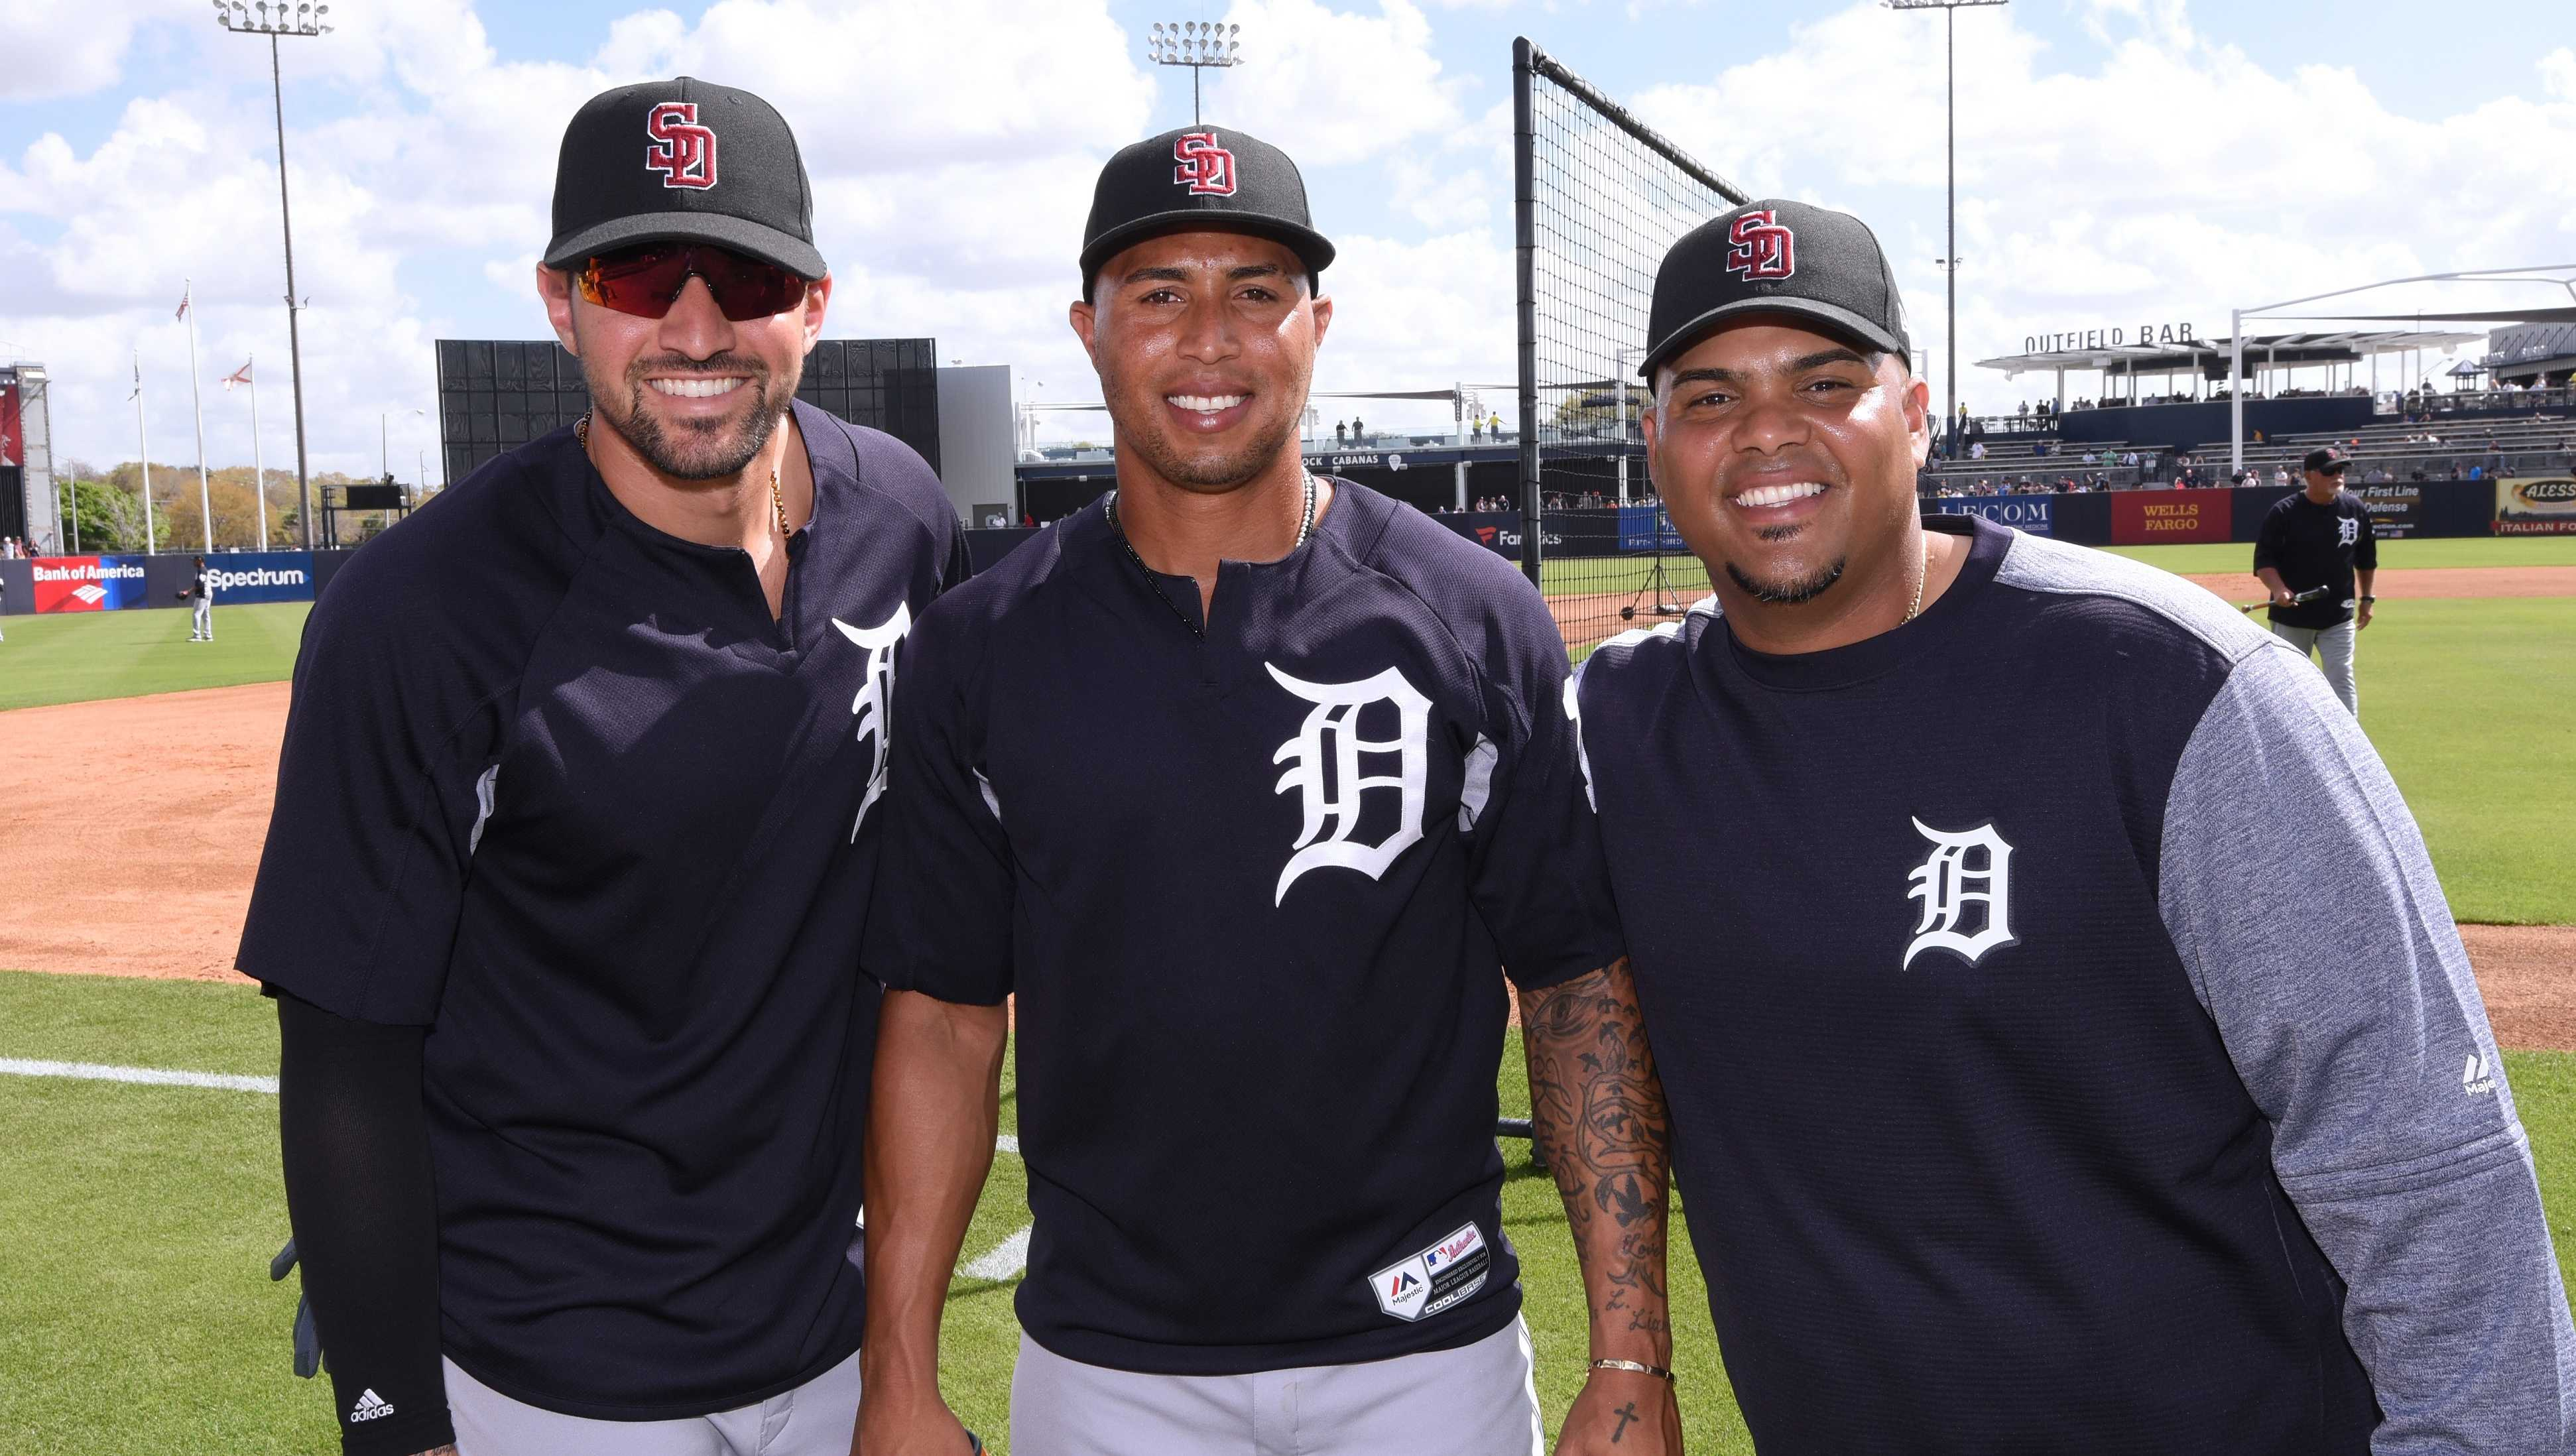 (L-R) Nicholas Castellanos #9, Leonys Martin #12 and Brayan Pena #28 of the Detroit Tigers pose for a photo while wearing special SD logo baseball hats to honor the Marjory Stoneman Douglas High School shooting victims prior to a spring training game against the New York Yankees at George M. Steinbrenner Field on February 23, 2018 in Tampa, Florida.